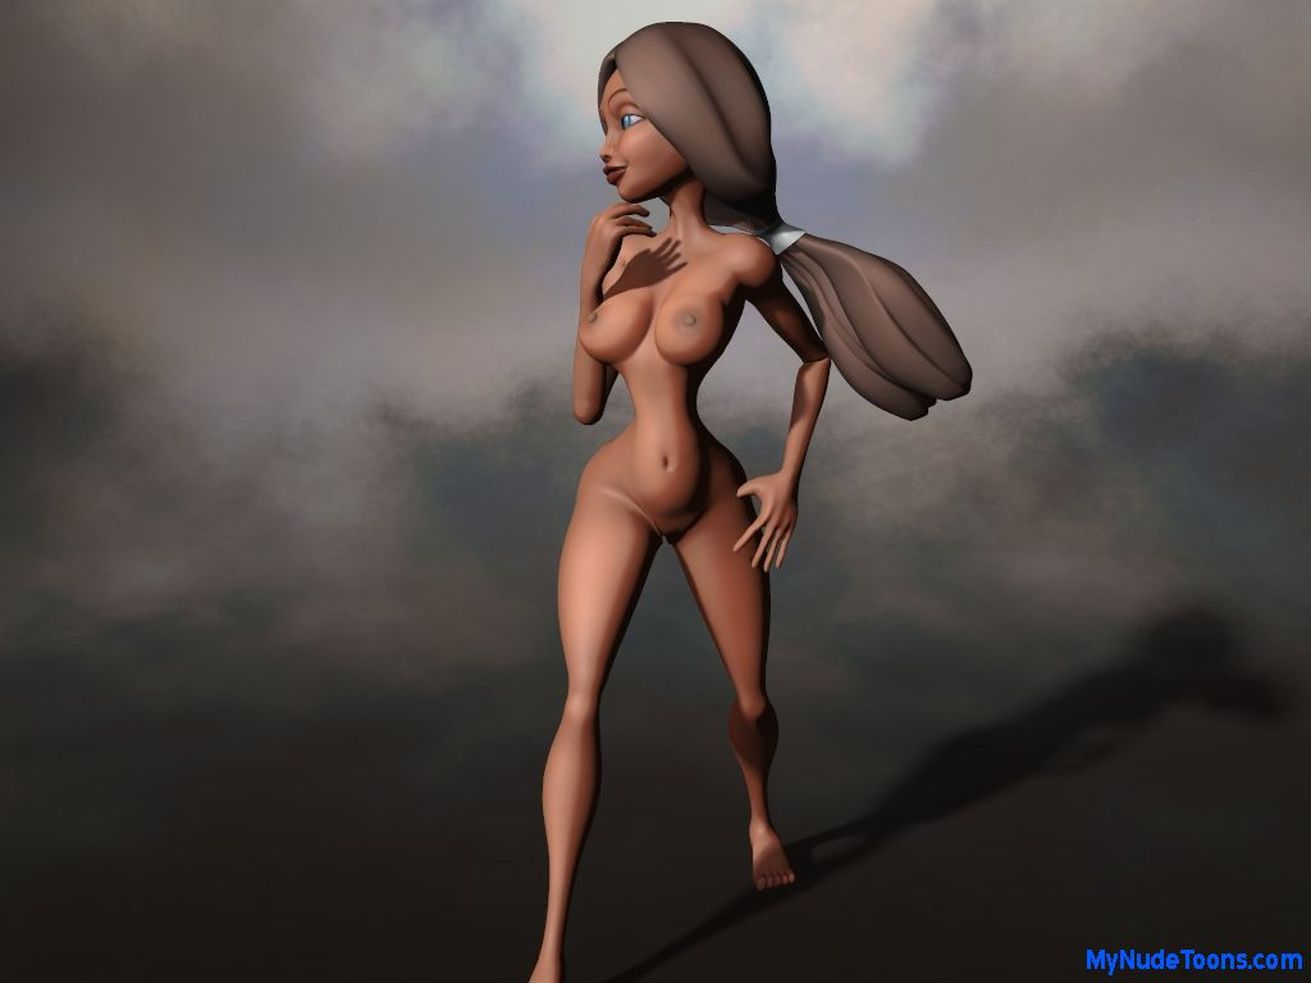 Nude world:hot toon animations sexy lady